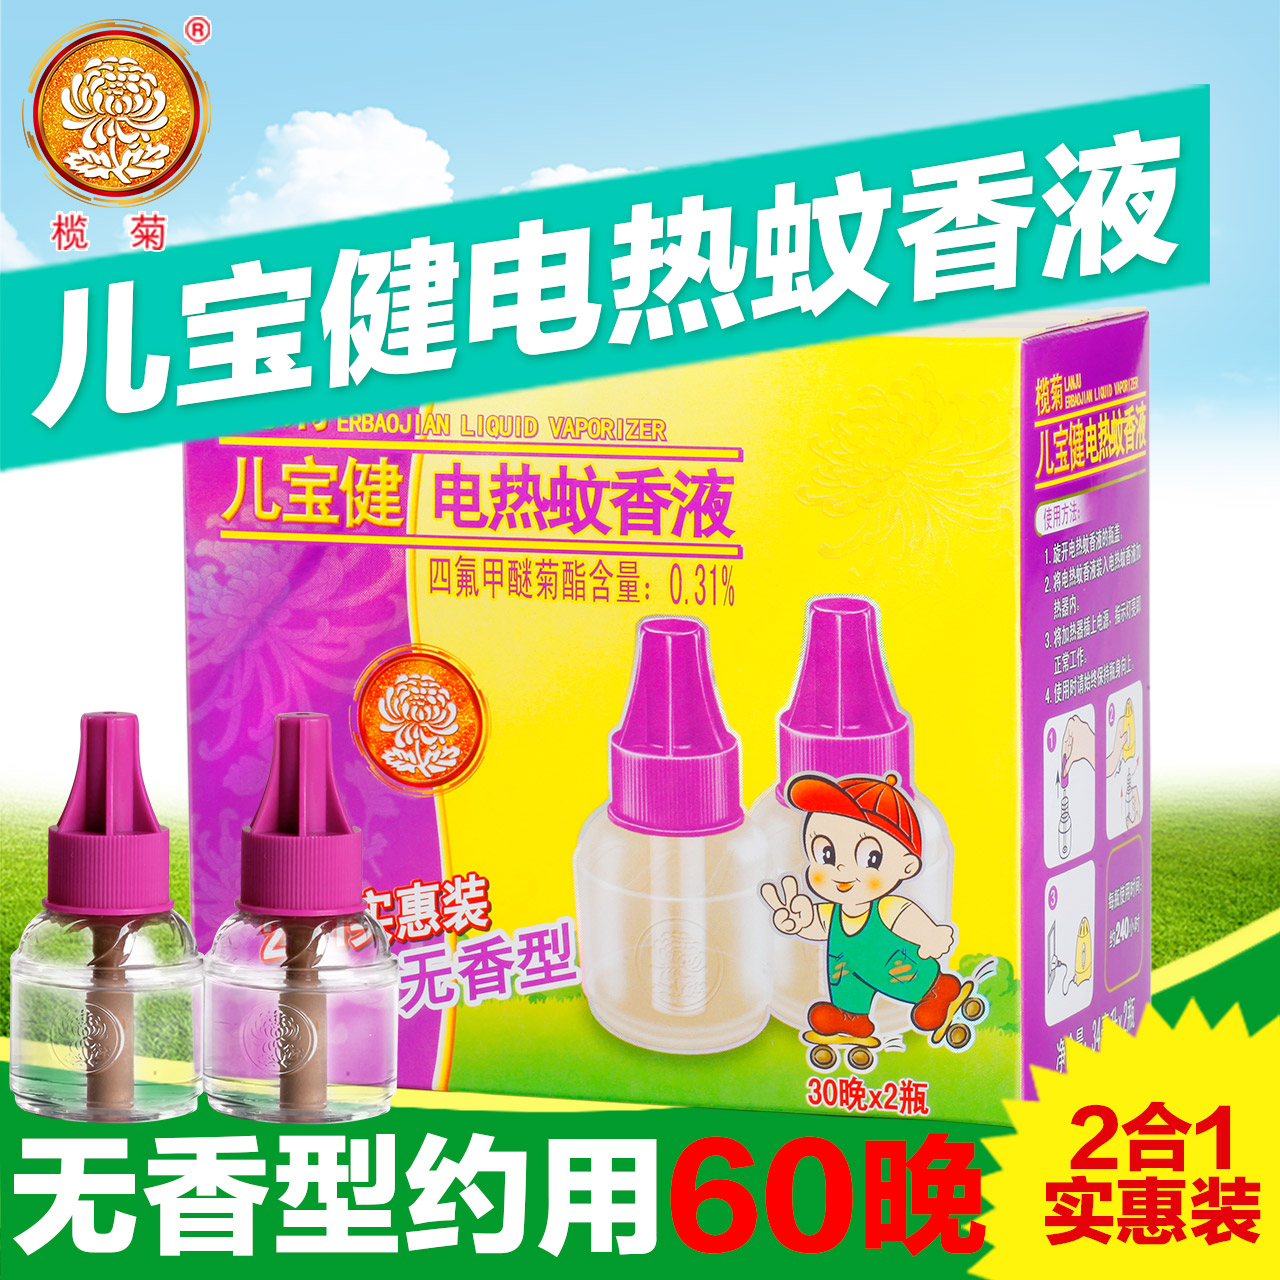 Lam ju electric mosquito liquid without scent 2 children bao jian 1 affordable loaded